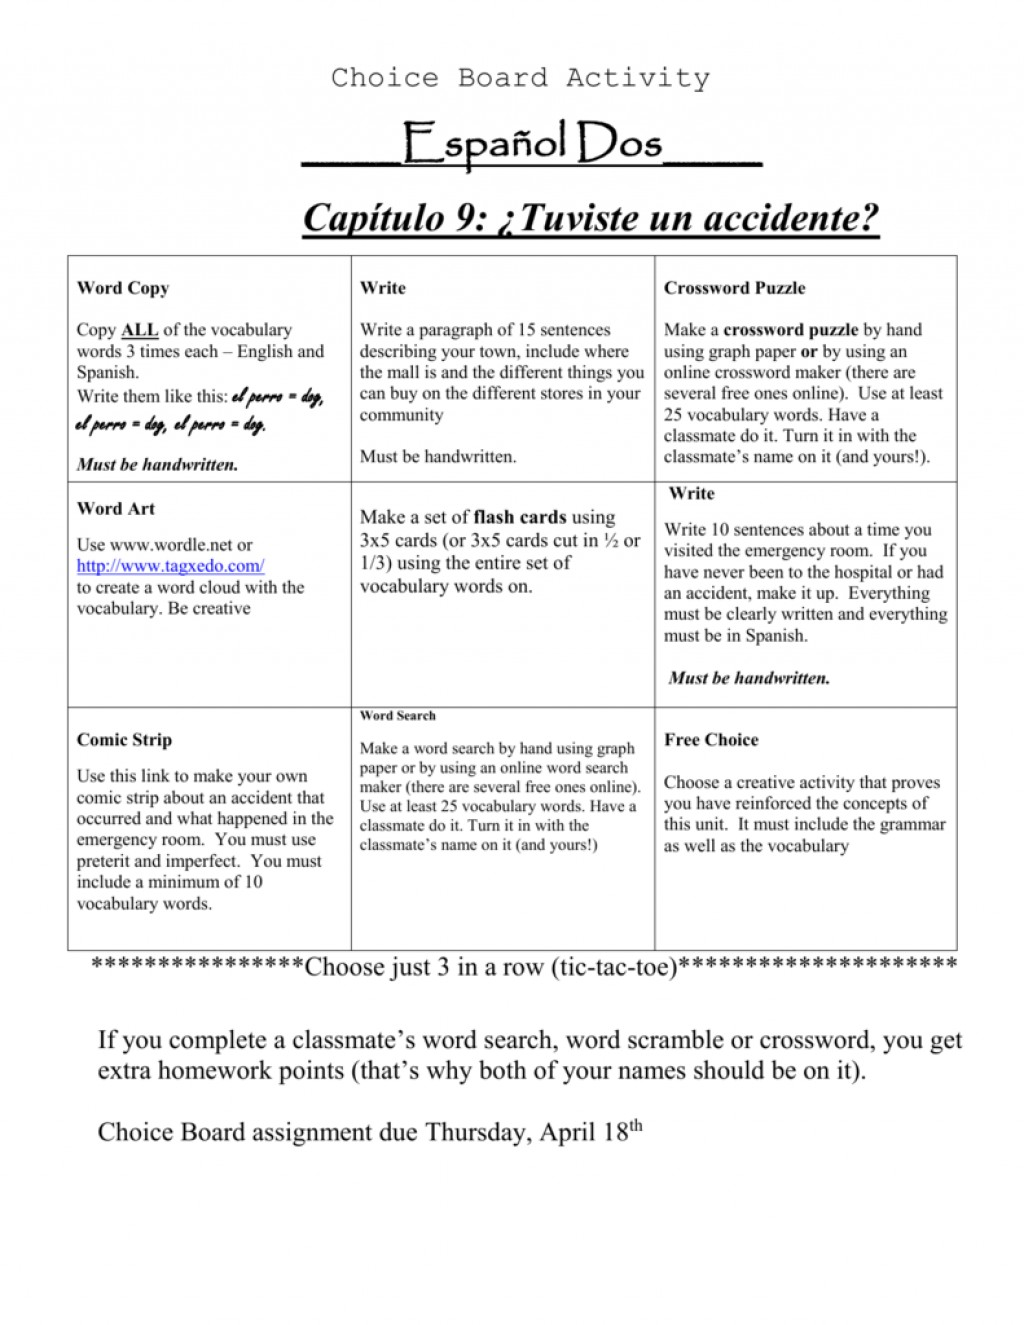 008 Essay Example Political Crossword 008954236 1 Dreaded Clue Large